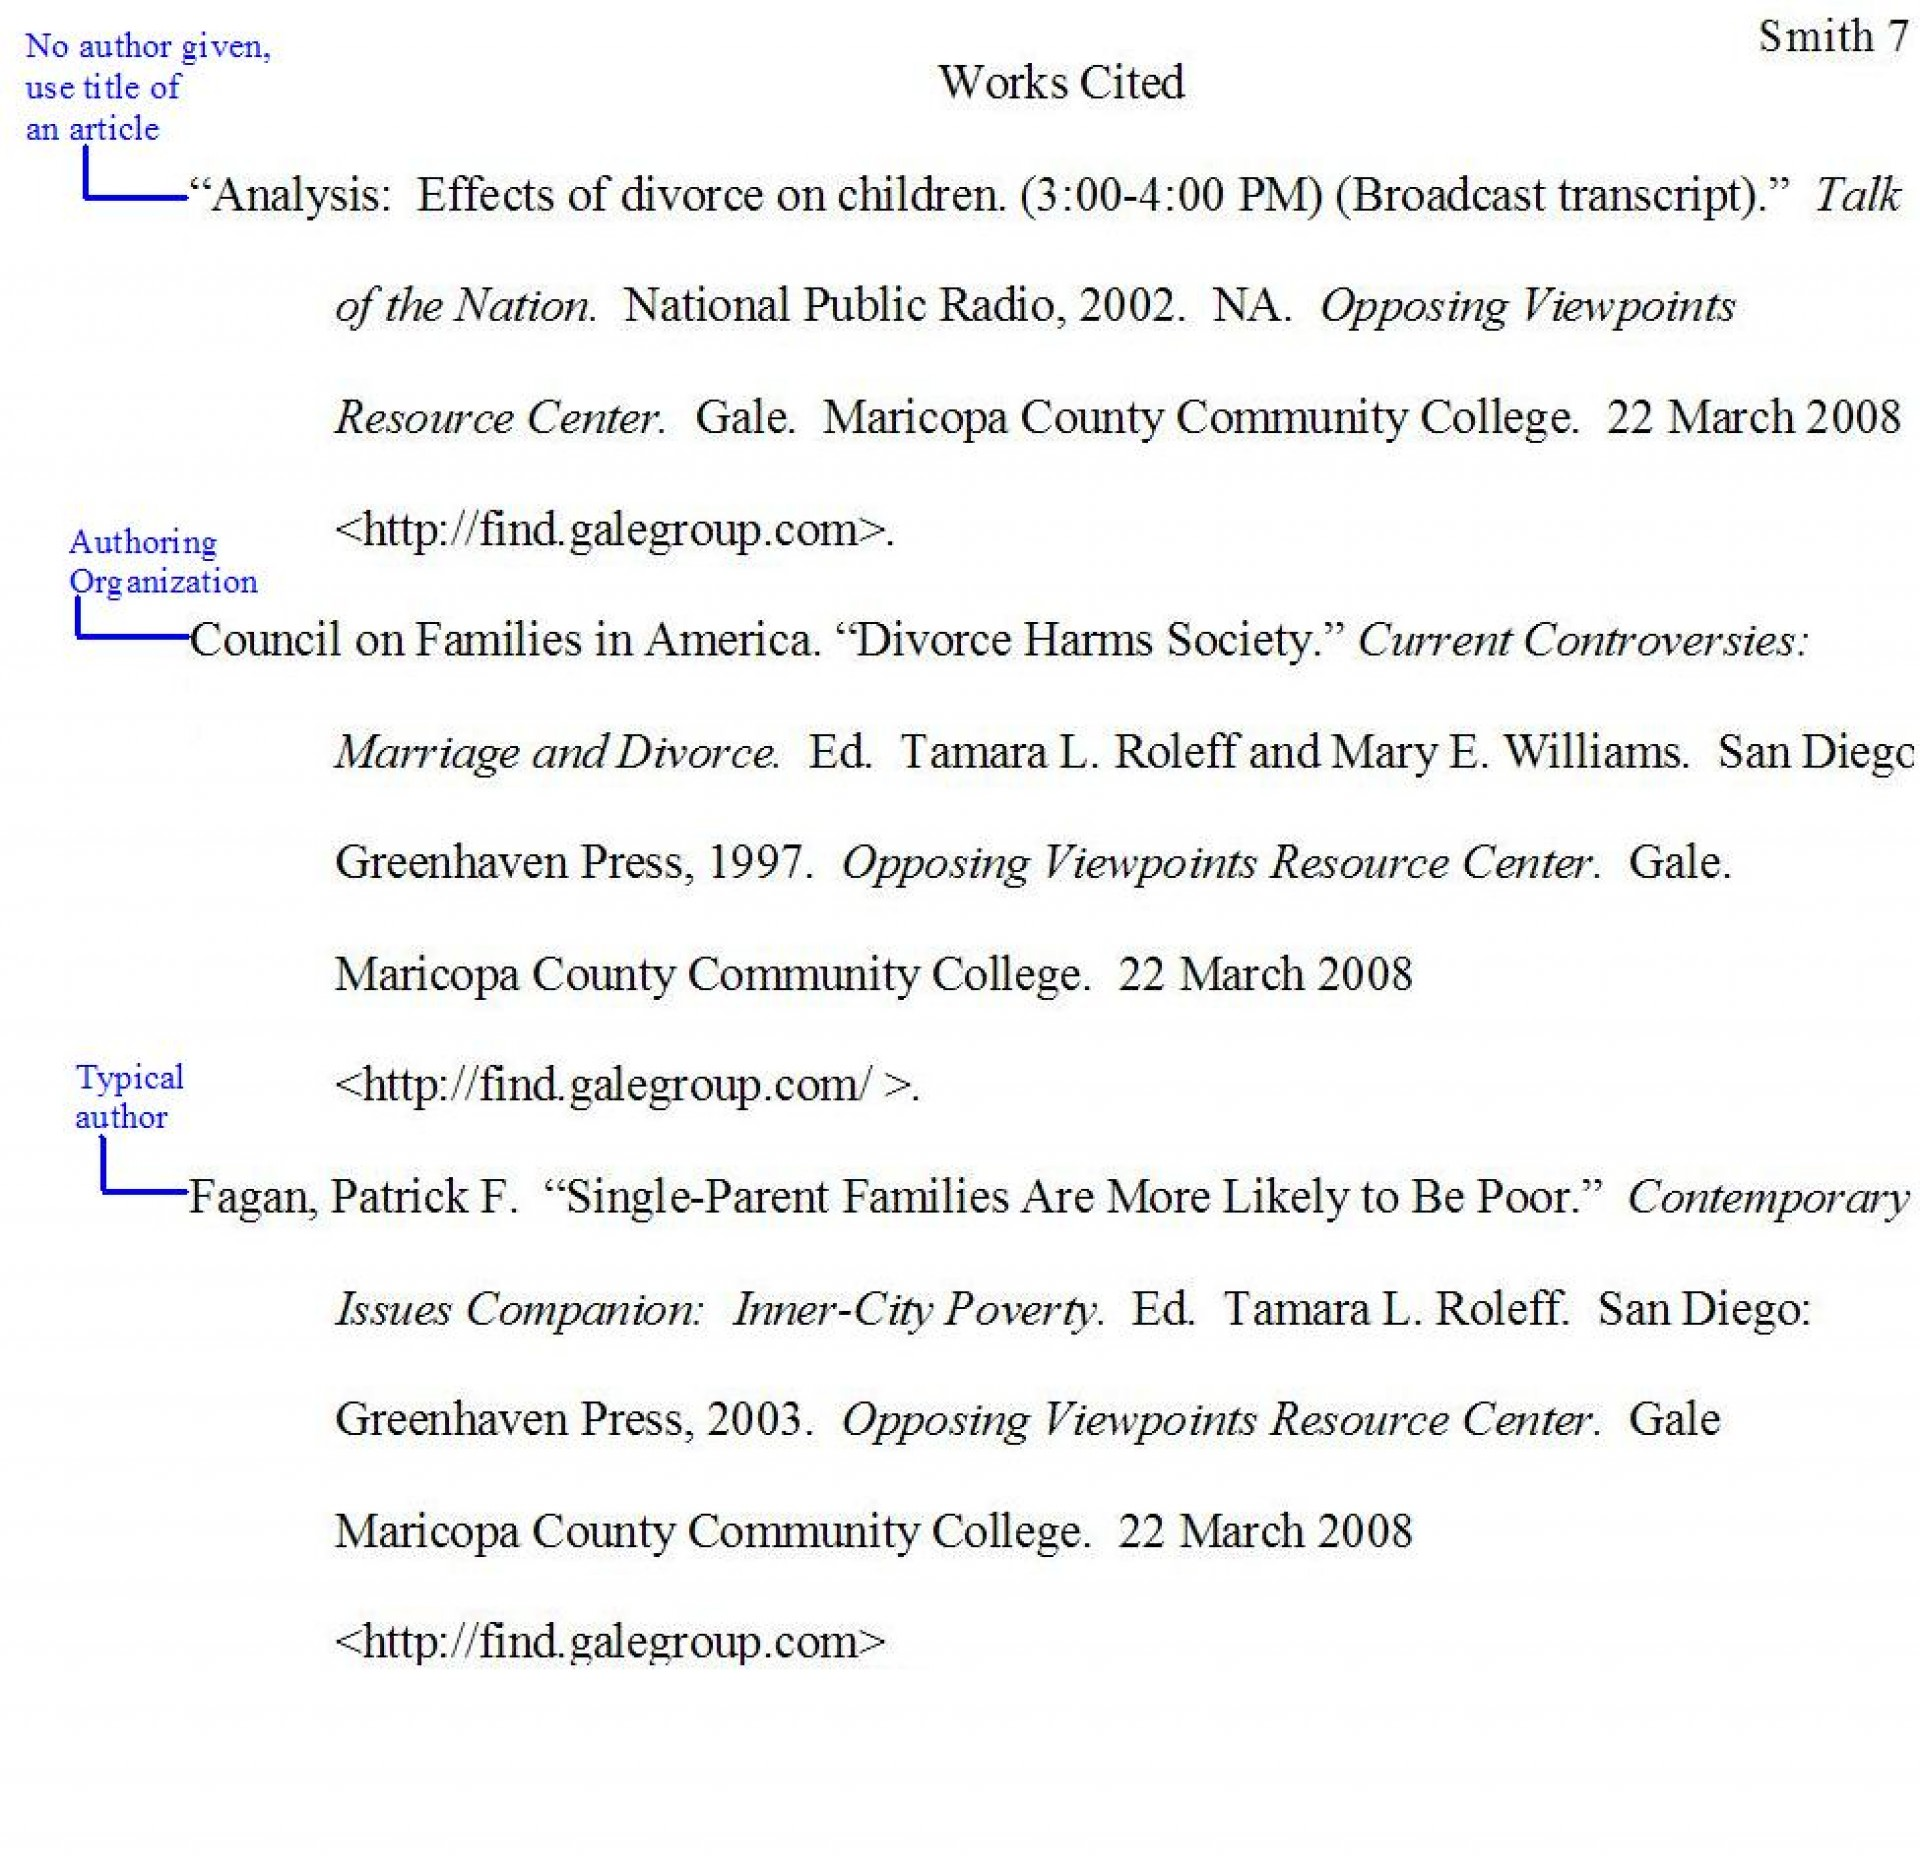 006 Samplewrkctd Jpg Research Paper How To Outstanding Cite Mla Format A In 8 Apa Style 1920